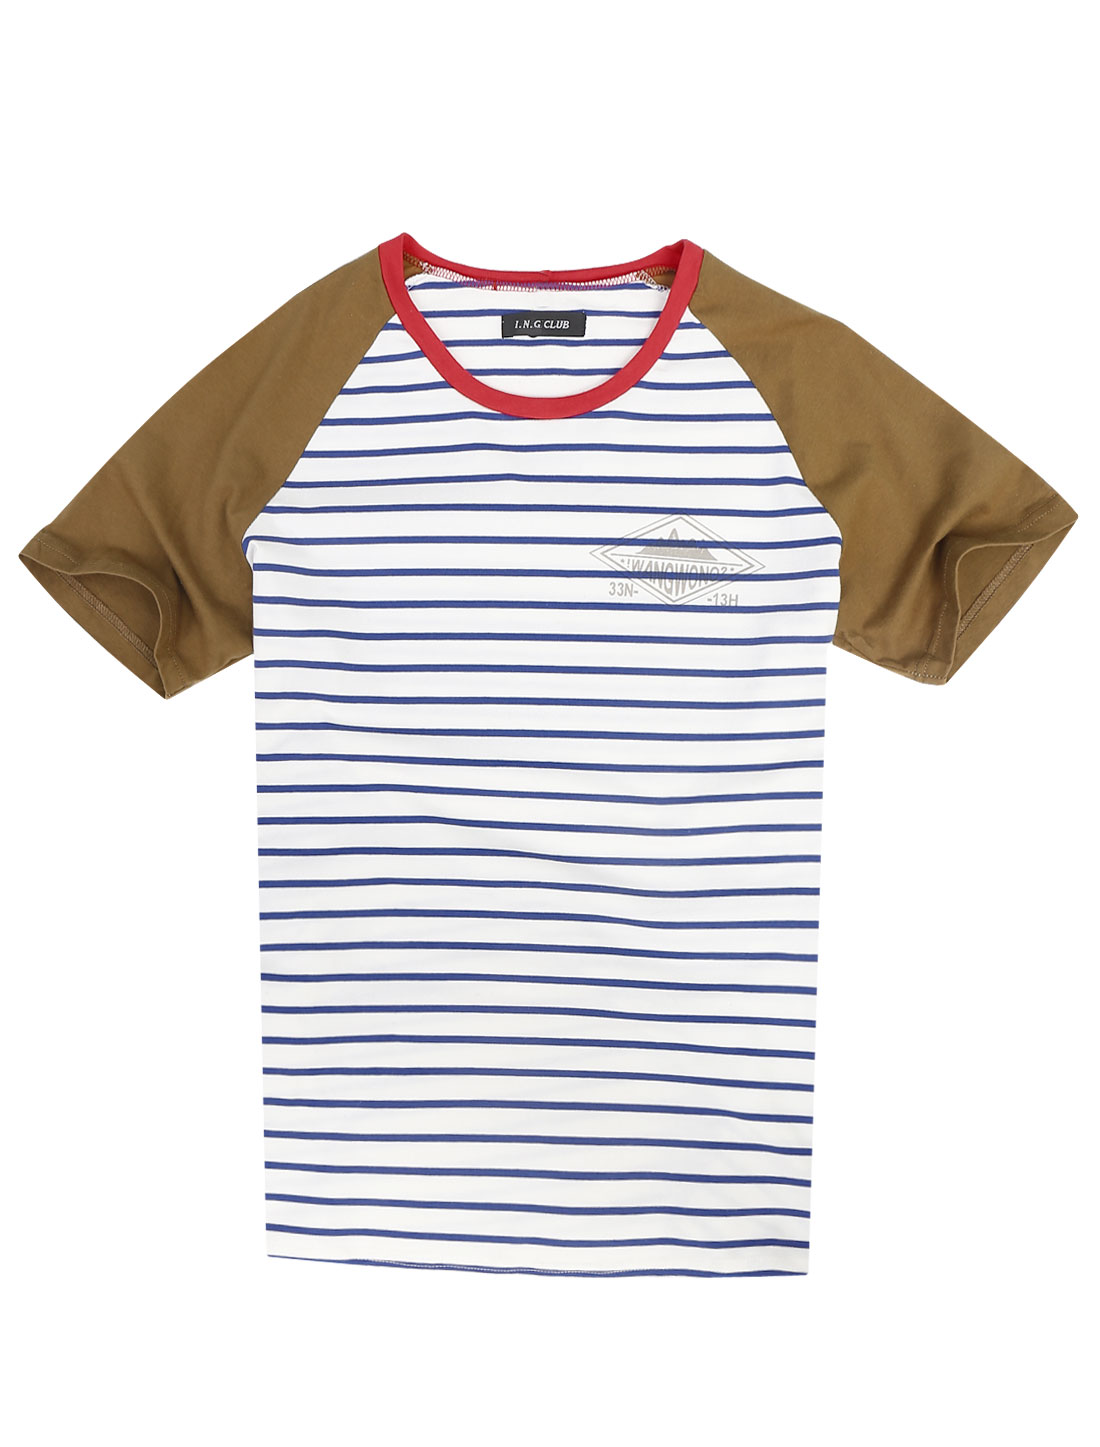 Men Round Neck Short Raglan Sleeve Bar Striped T-Shirt White Camel S